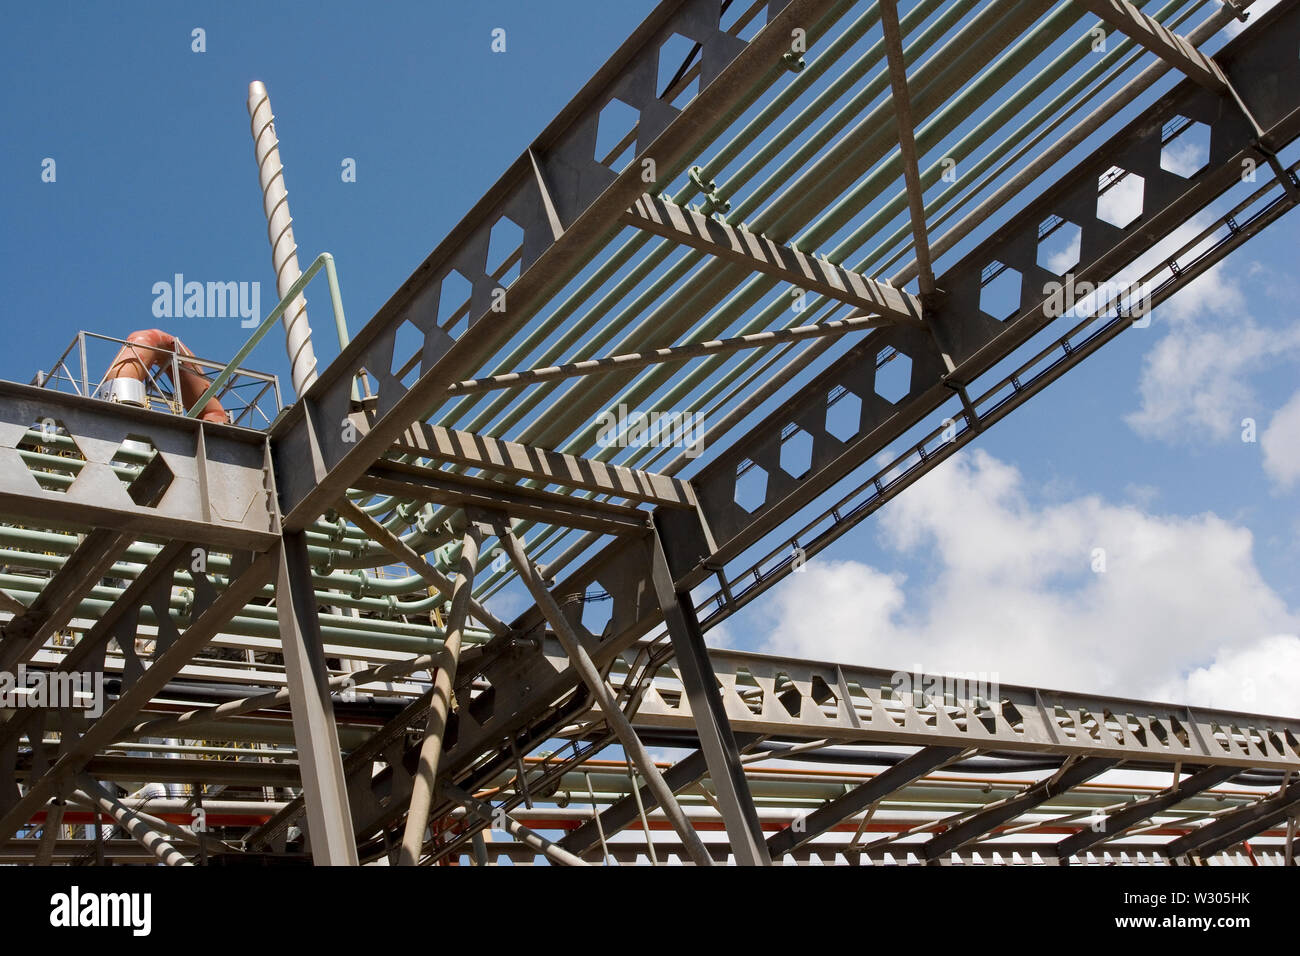 Mining, managing & transporting of titanium mineral sands. Abstract view up gantry to part of the construction of a new processing plant being built. Stock Photo